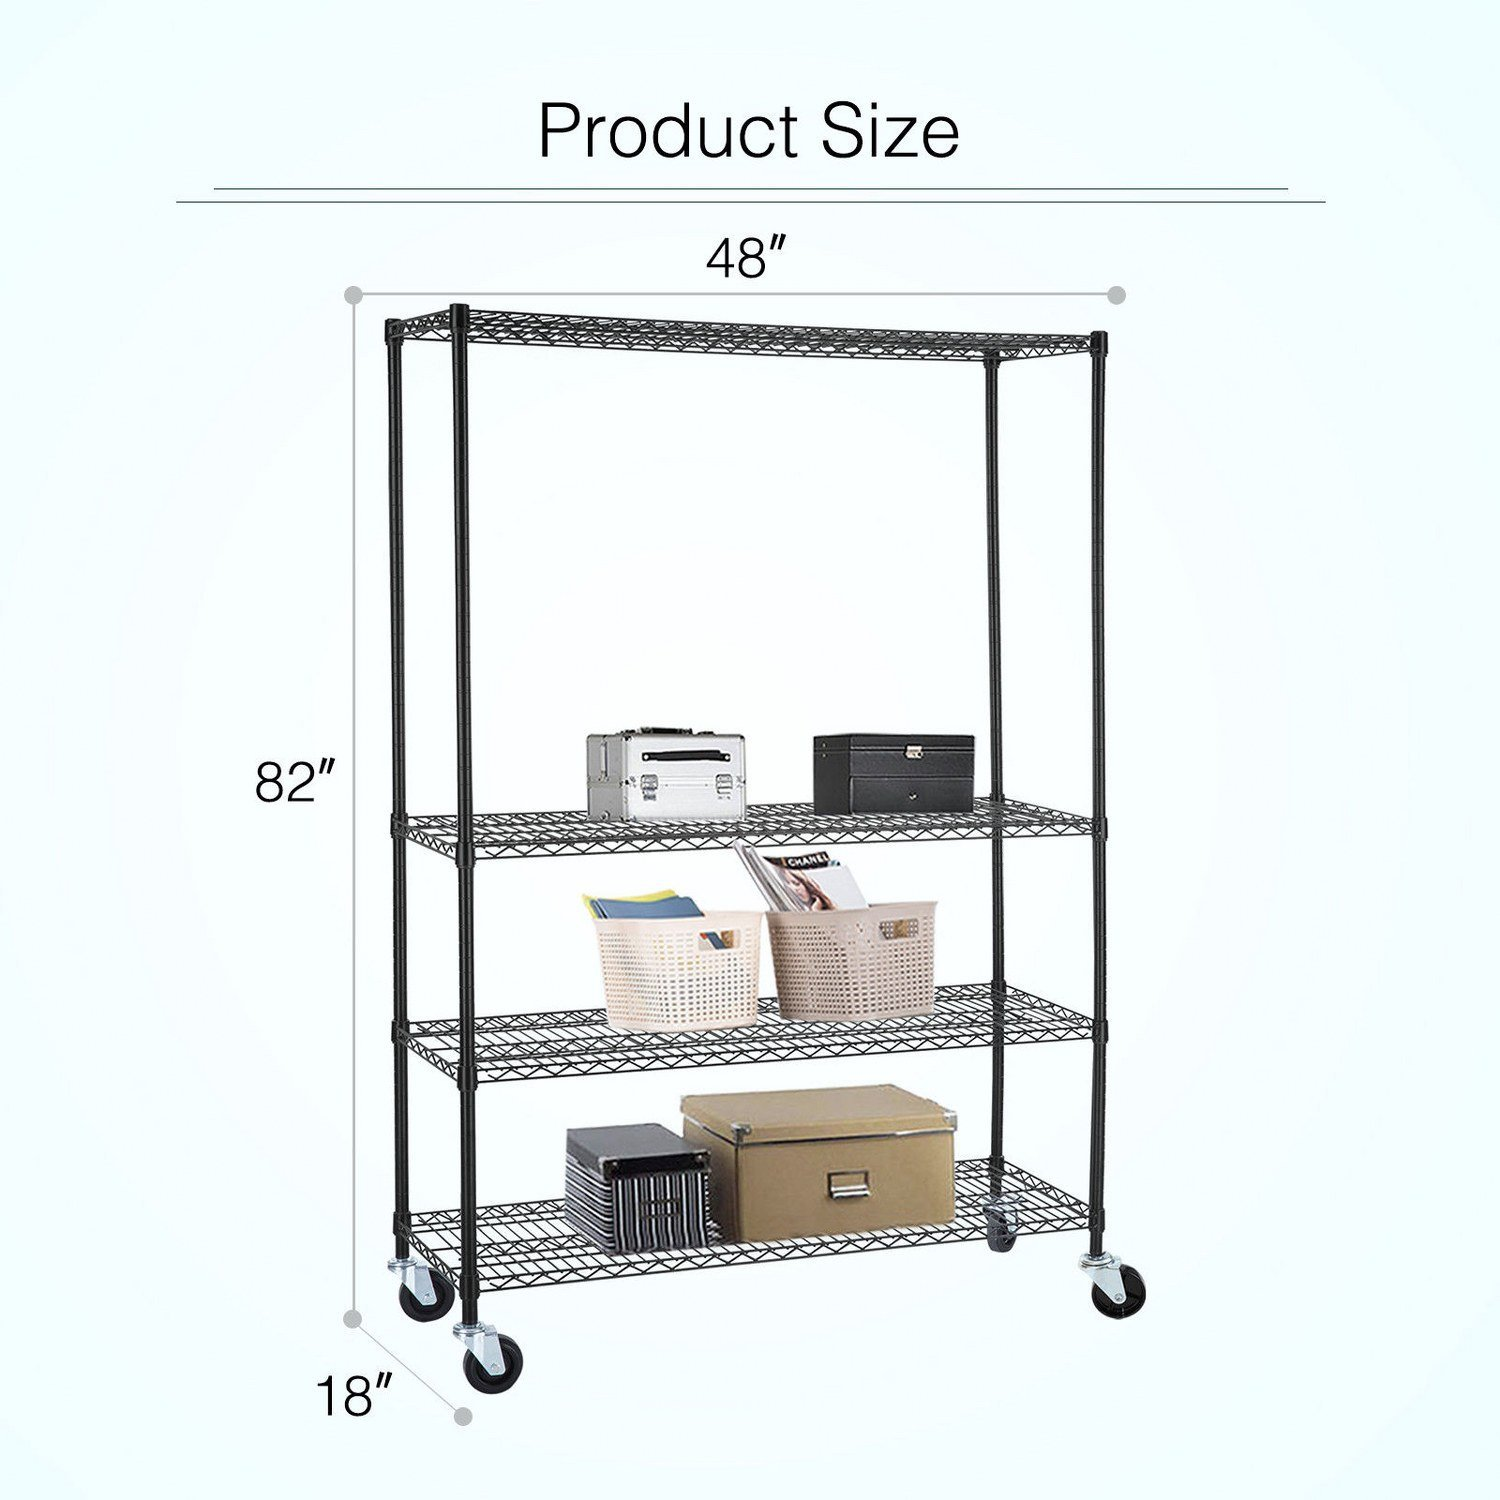 Adjustable Heavy Duty 4 Tier Shelving Rack Weight Capacity 200 Lbs. Steel Wire Metal Shelf New by Okapi (Image #4)